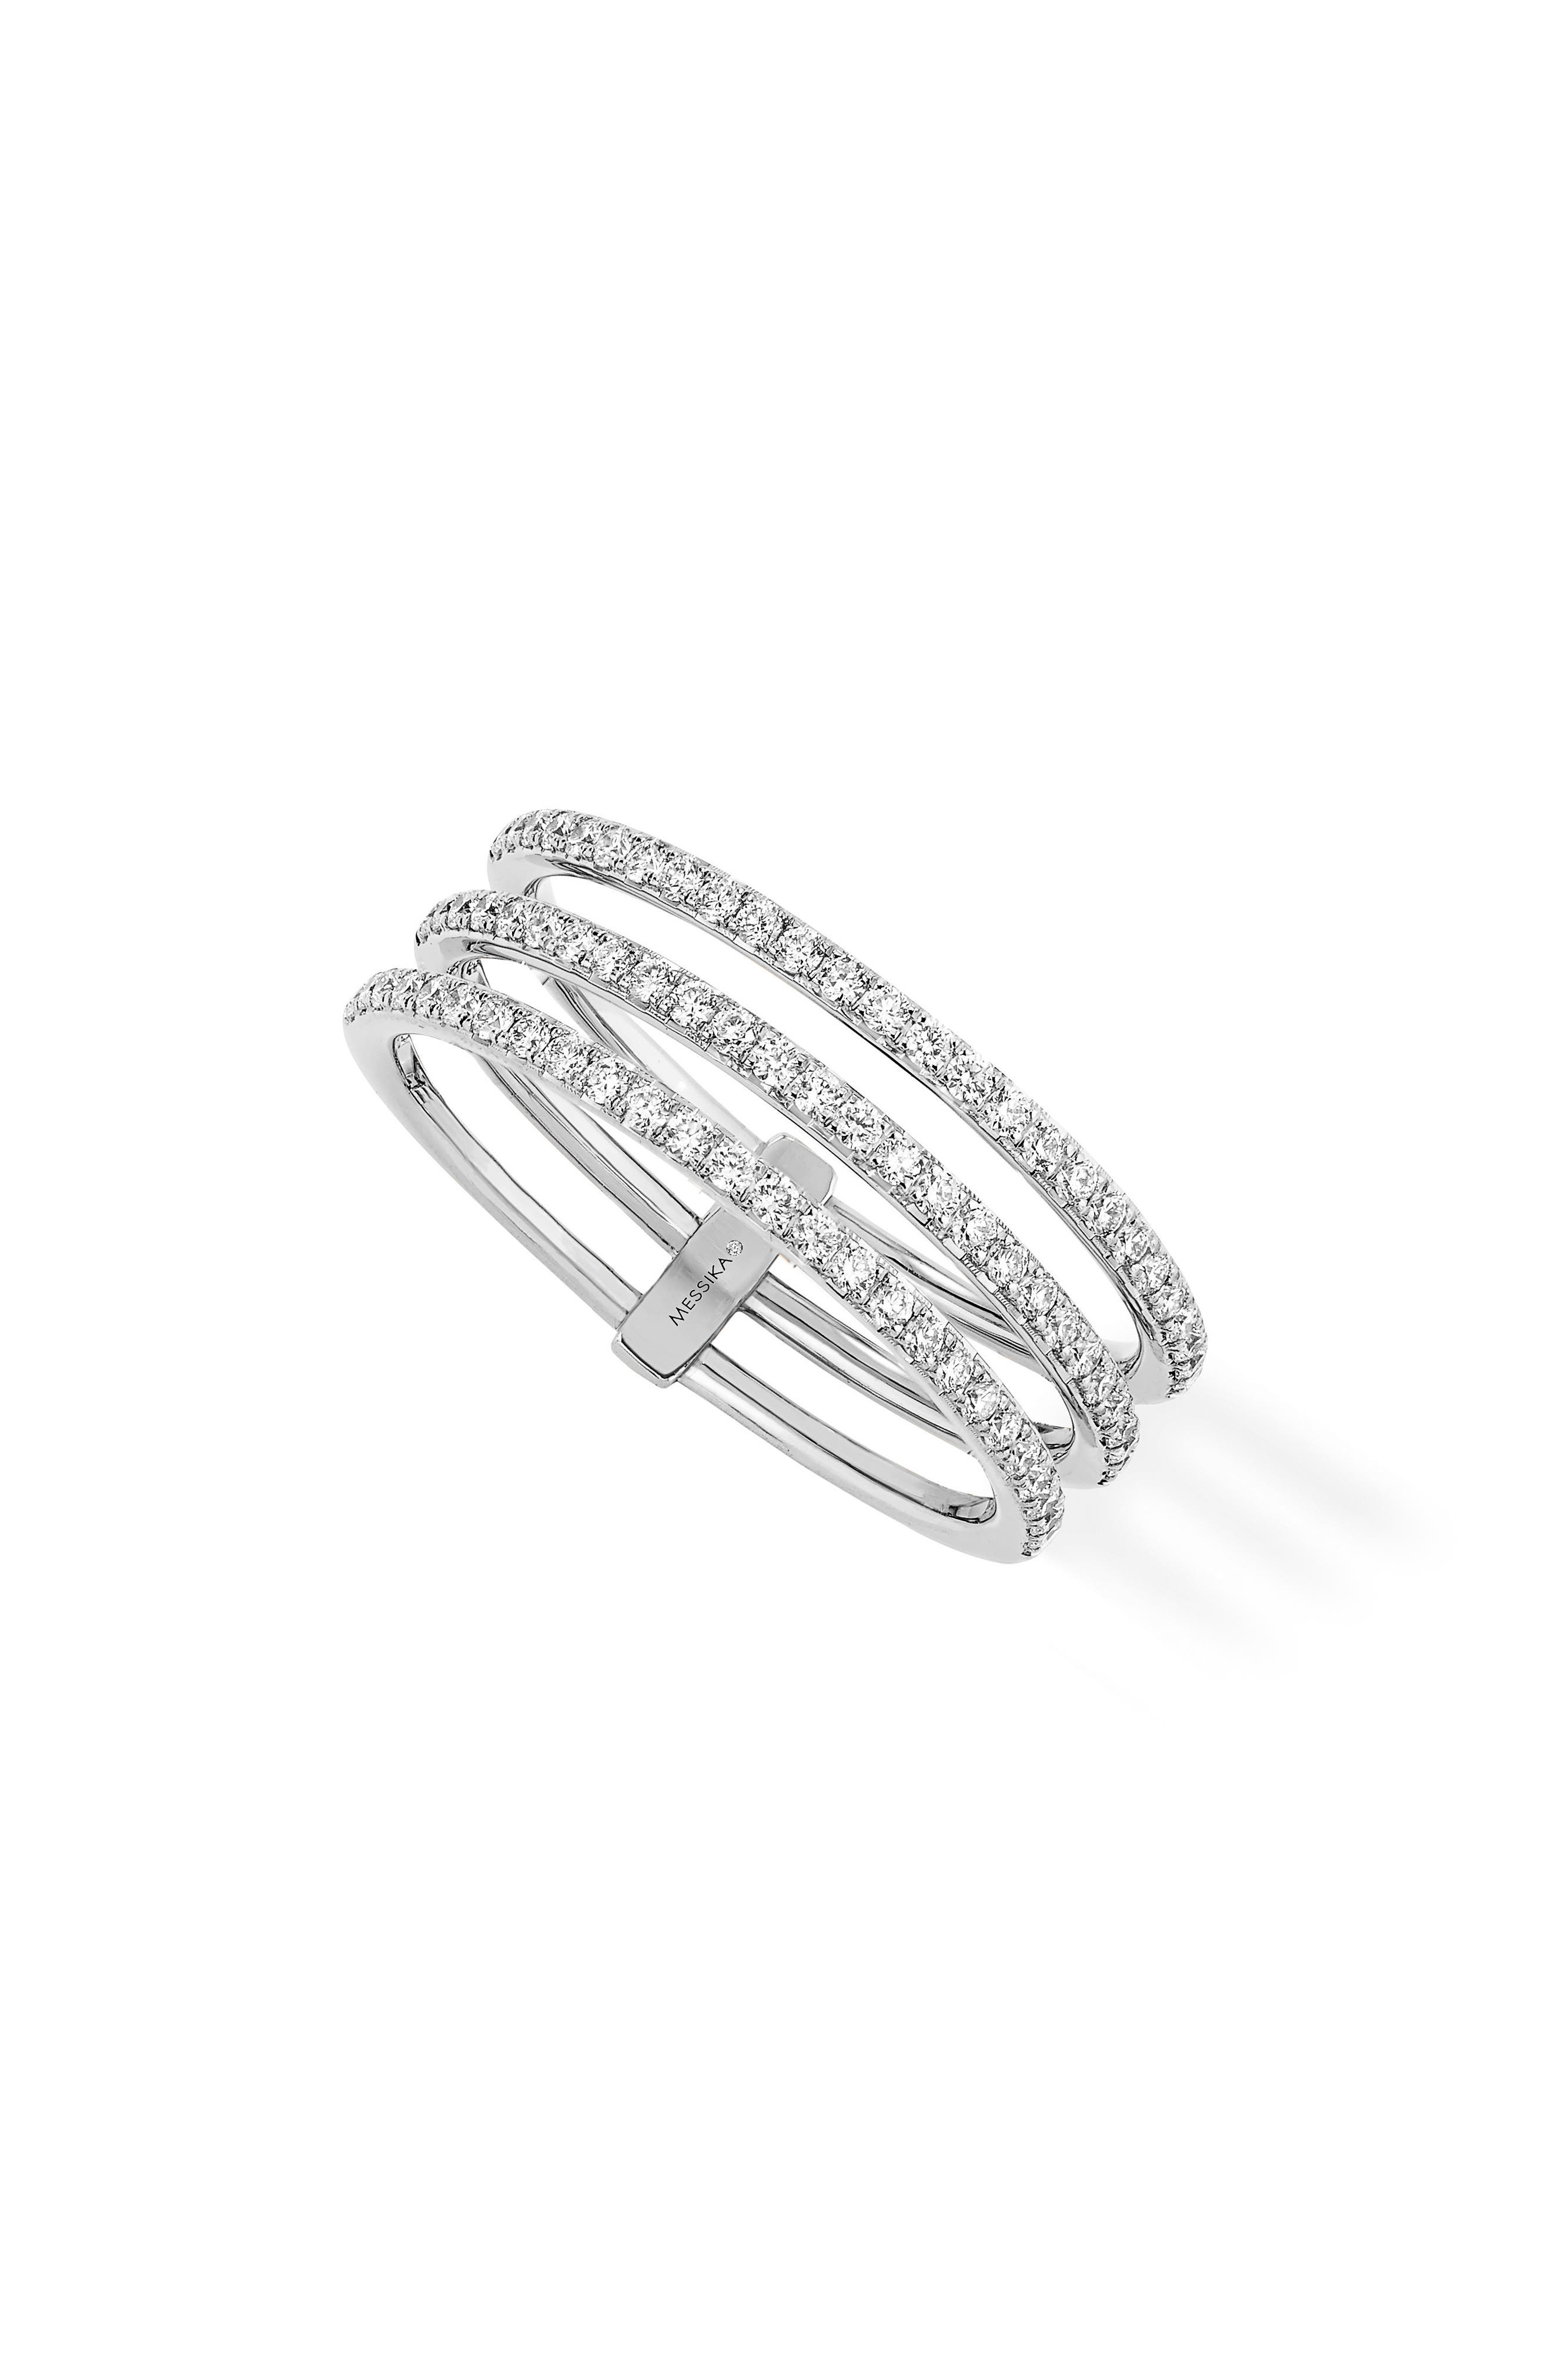 3-Row Diamond Ring,                         Main,                         color, WHITE GOLD